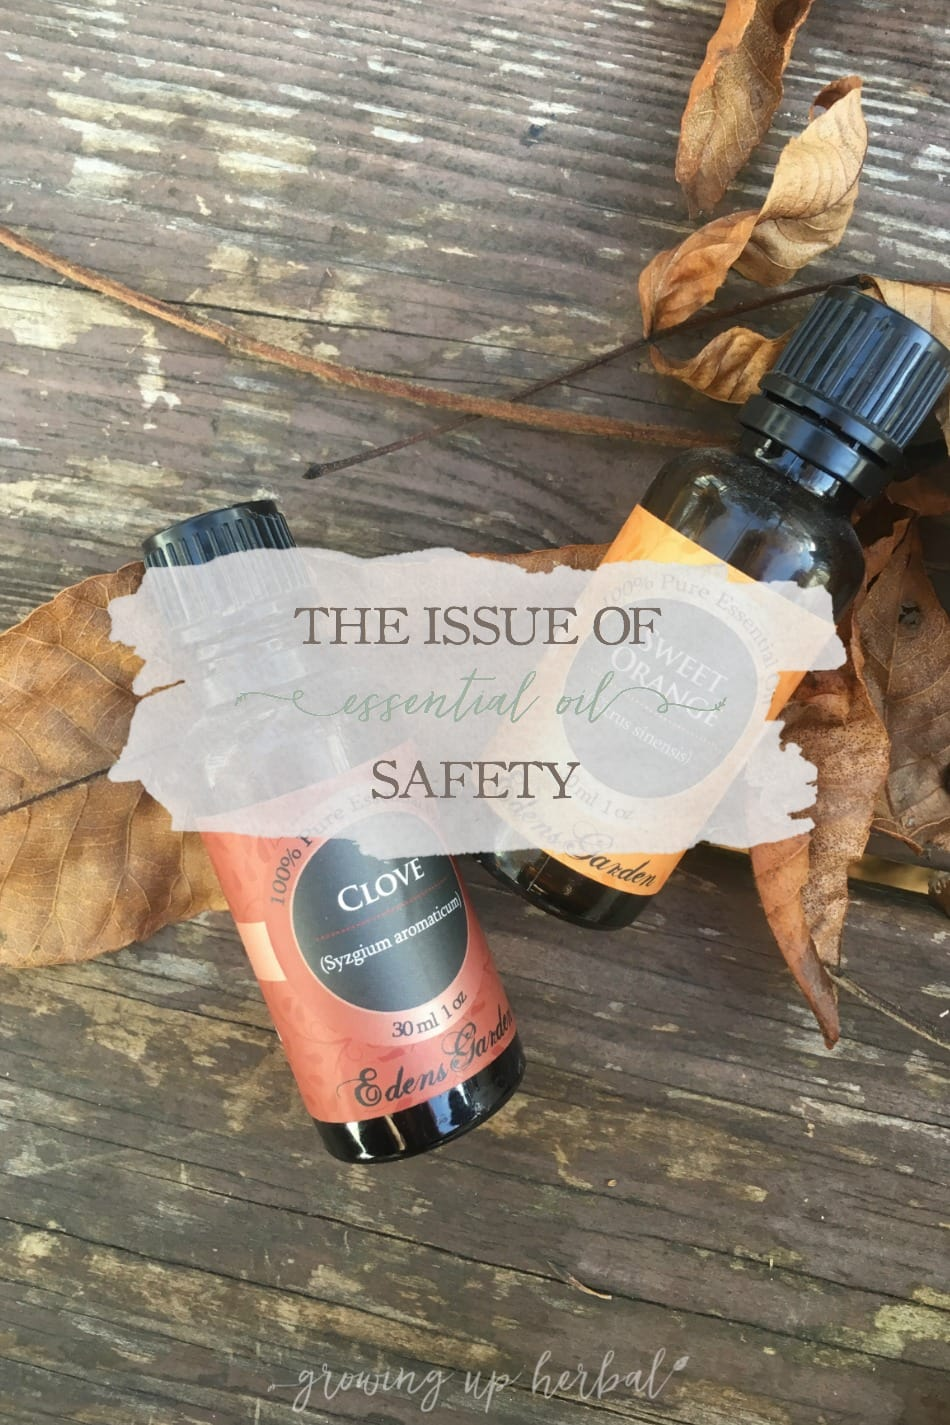 The Issue of Essential Oil Safety | Growing Up Herbal | With all the confusing info on essential oil safety these days, I've written about my experience with learning to use essential oils safely in my home.